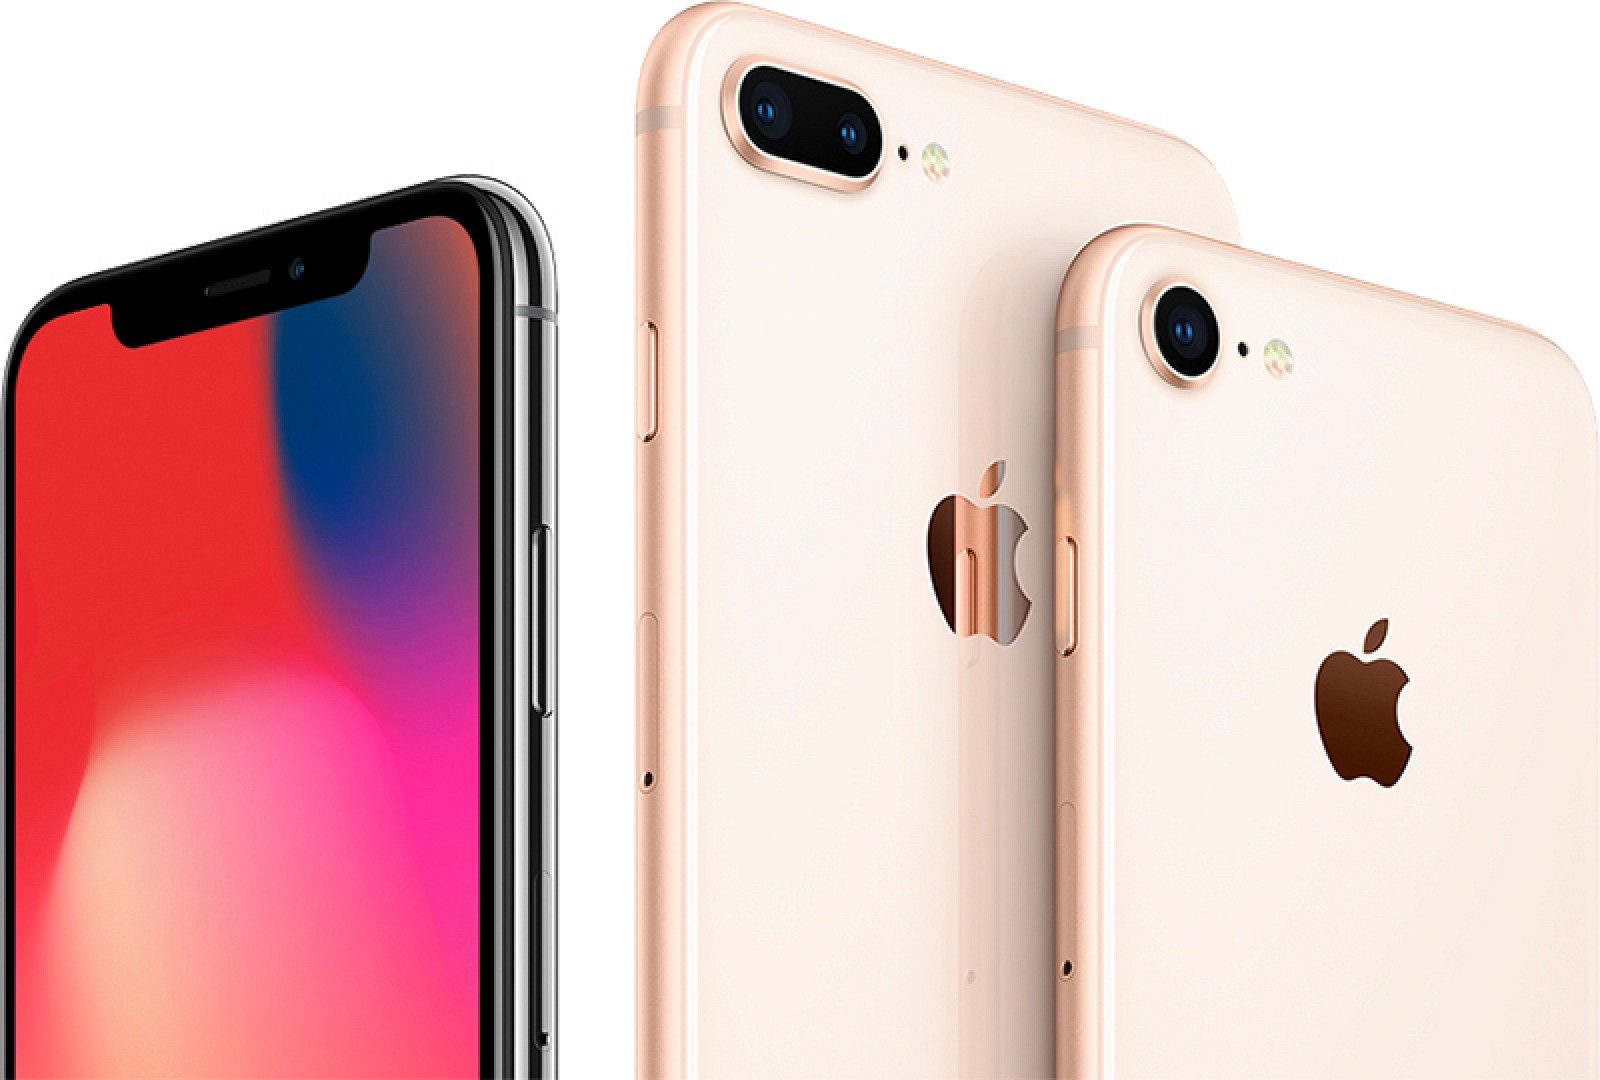 apple 39 s new 2018 iphone line up may consist of two phones. Black Bedroom Furniture Sets. Home Design Ideas